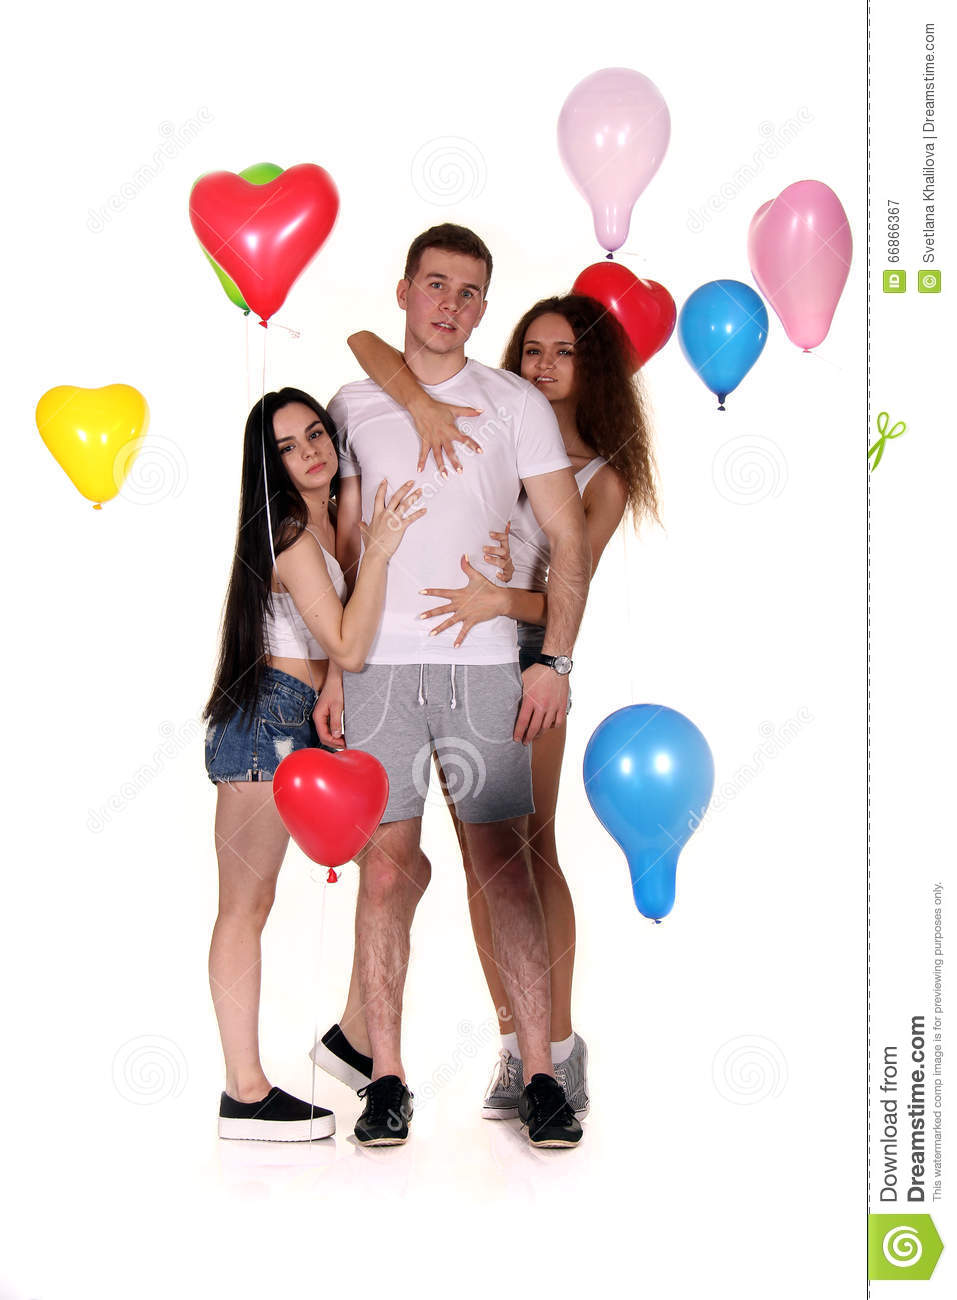 b94260afb85 Relations Between Men And Women Love Passion Betrayal Stock Image ...